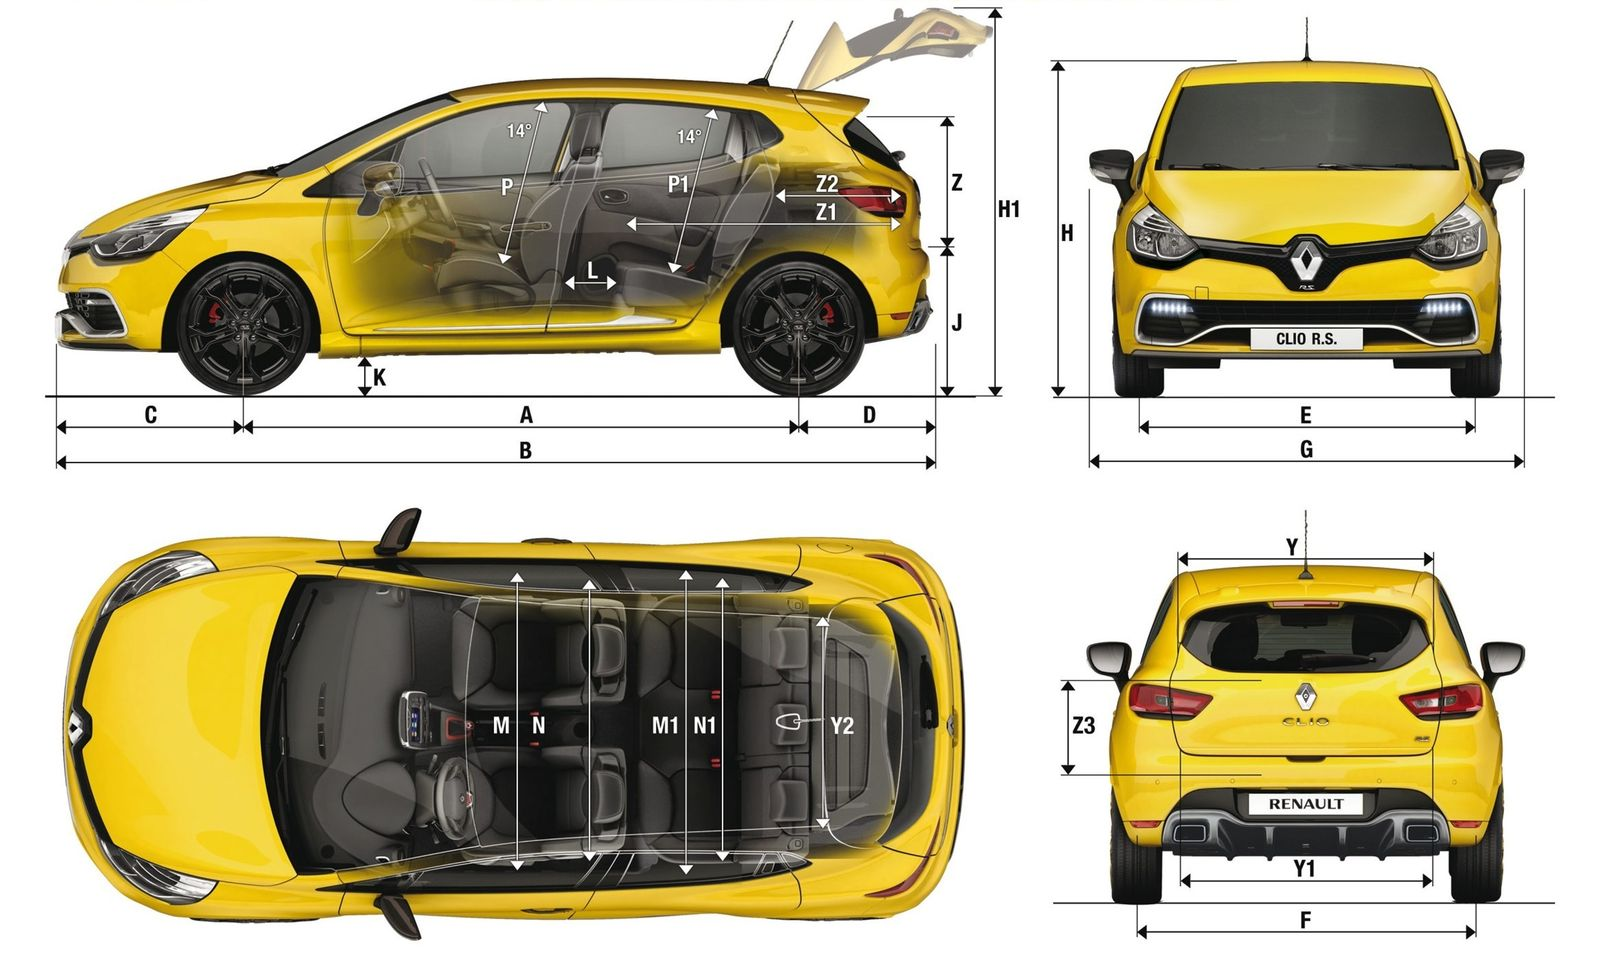 renault clio sizes and dimensions guide carwow. Black Bedroom Furniture Sets. Home Design Ideas